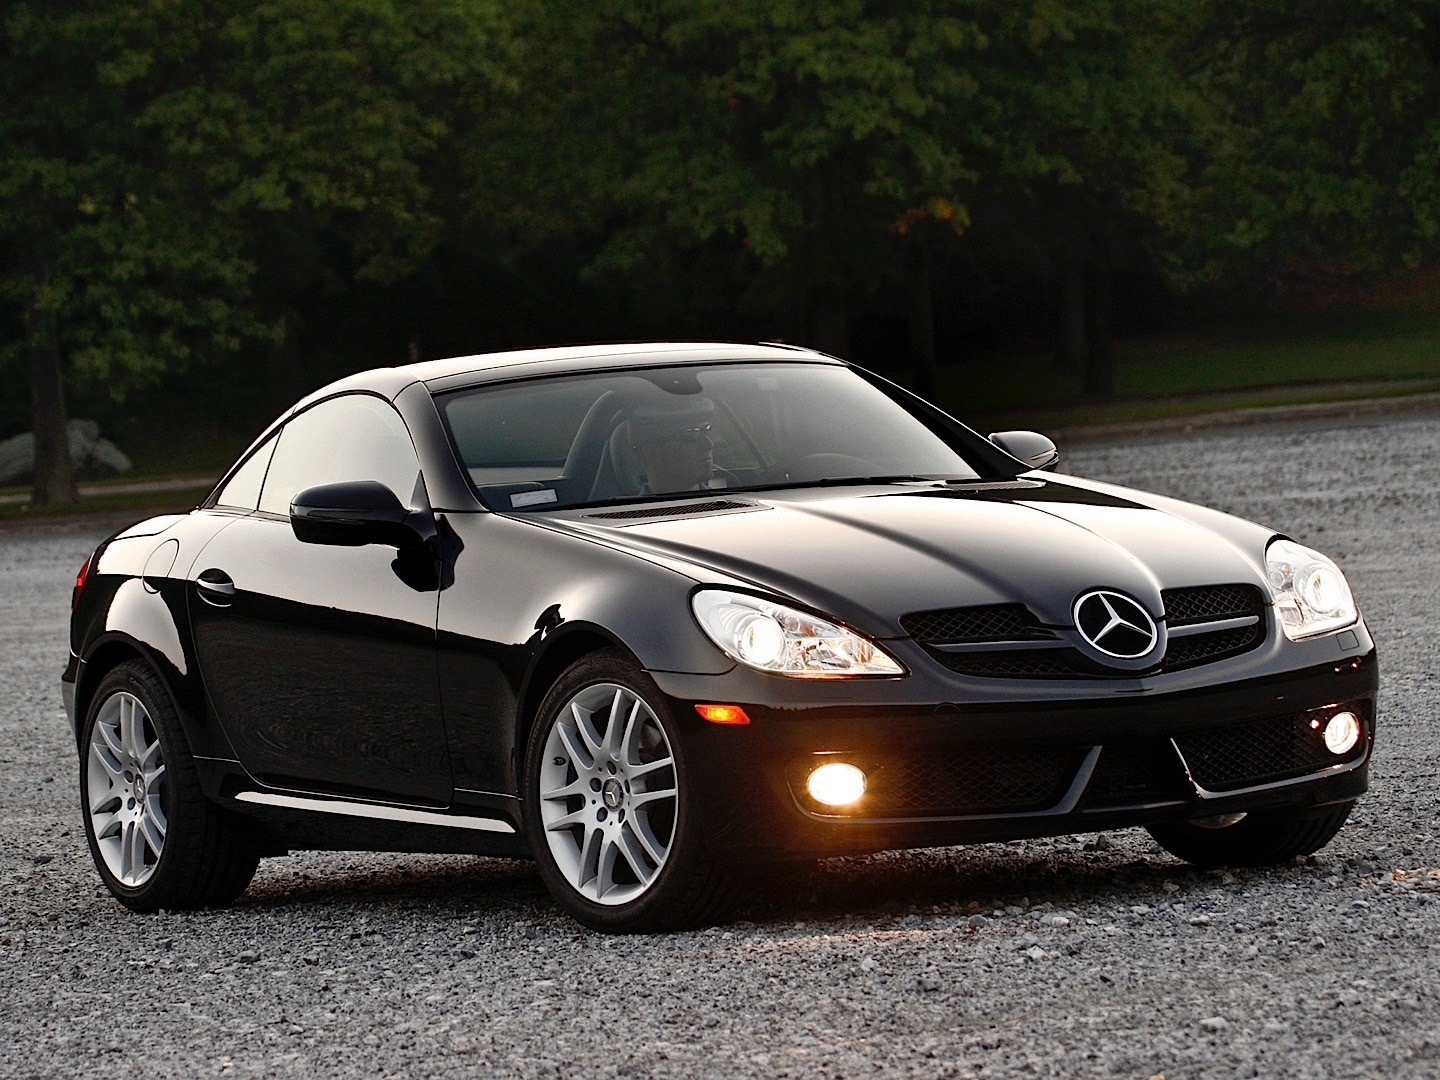 Mercedes benz slk r171 specs 2008 2009 2010 2011 for Mercedes benz cars pictures